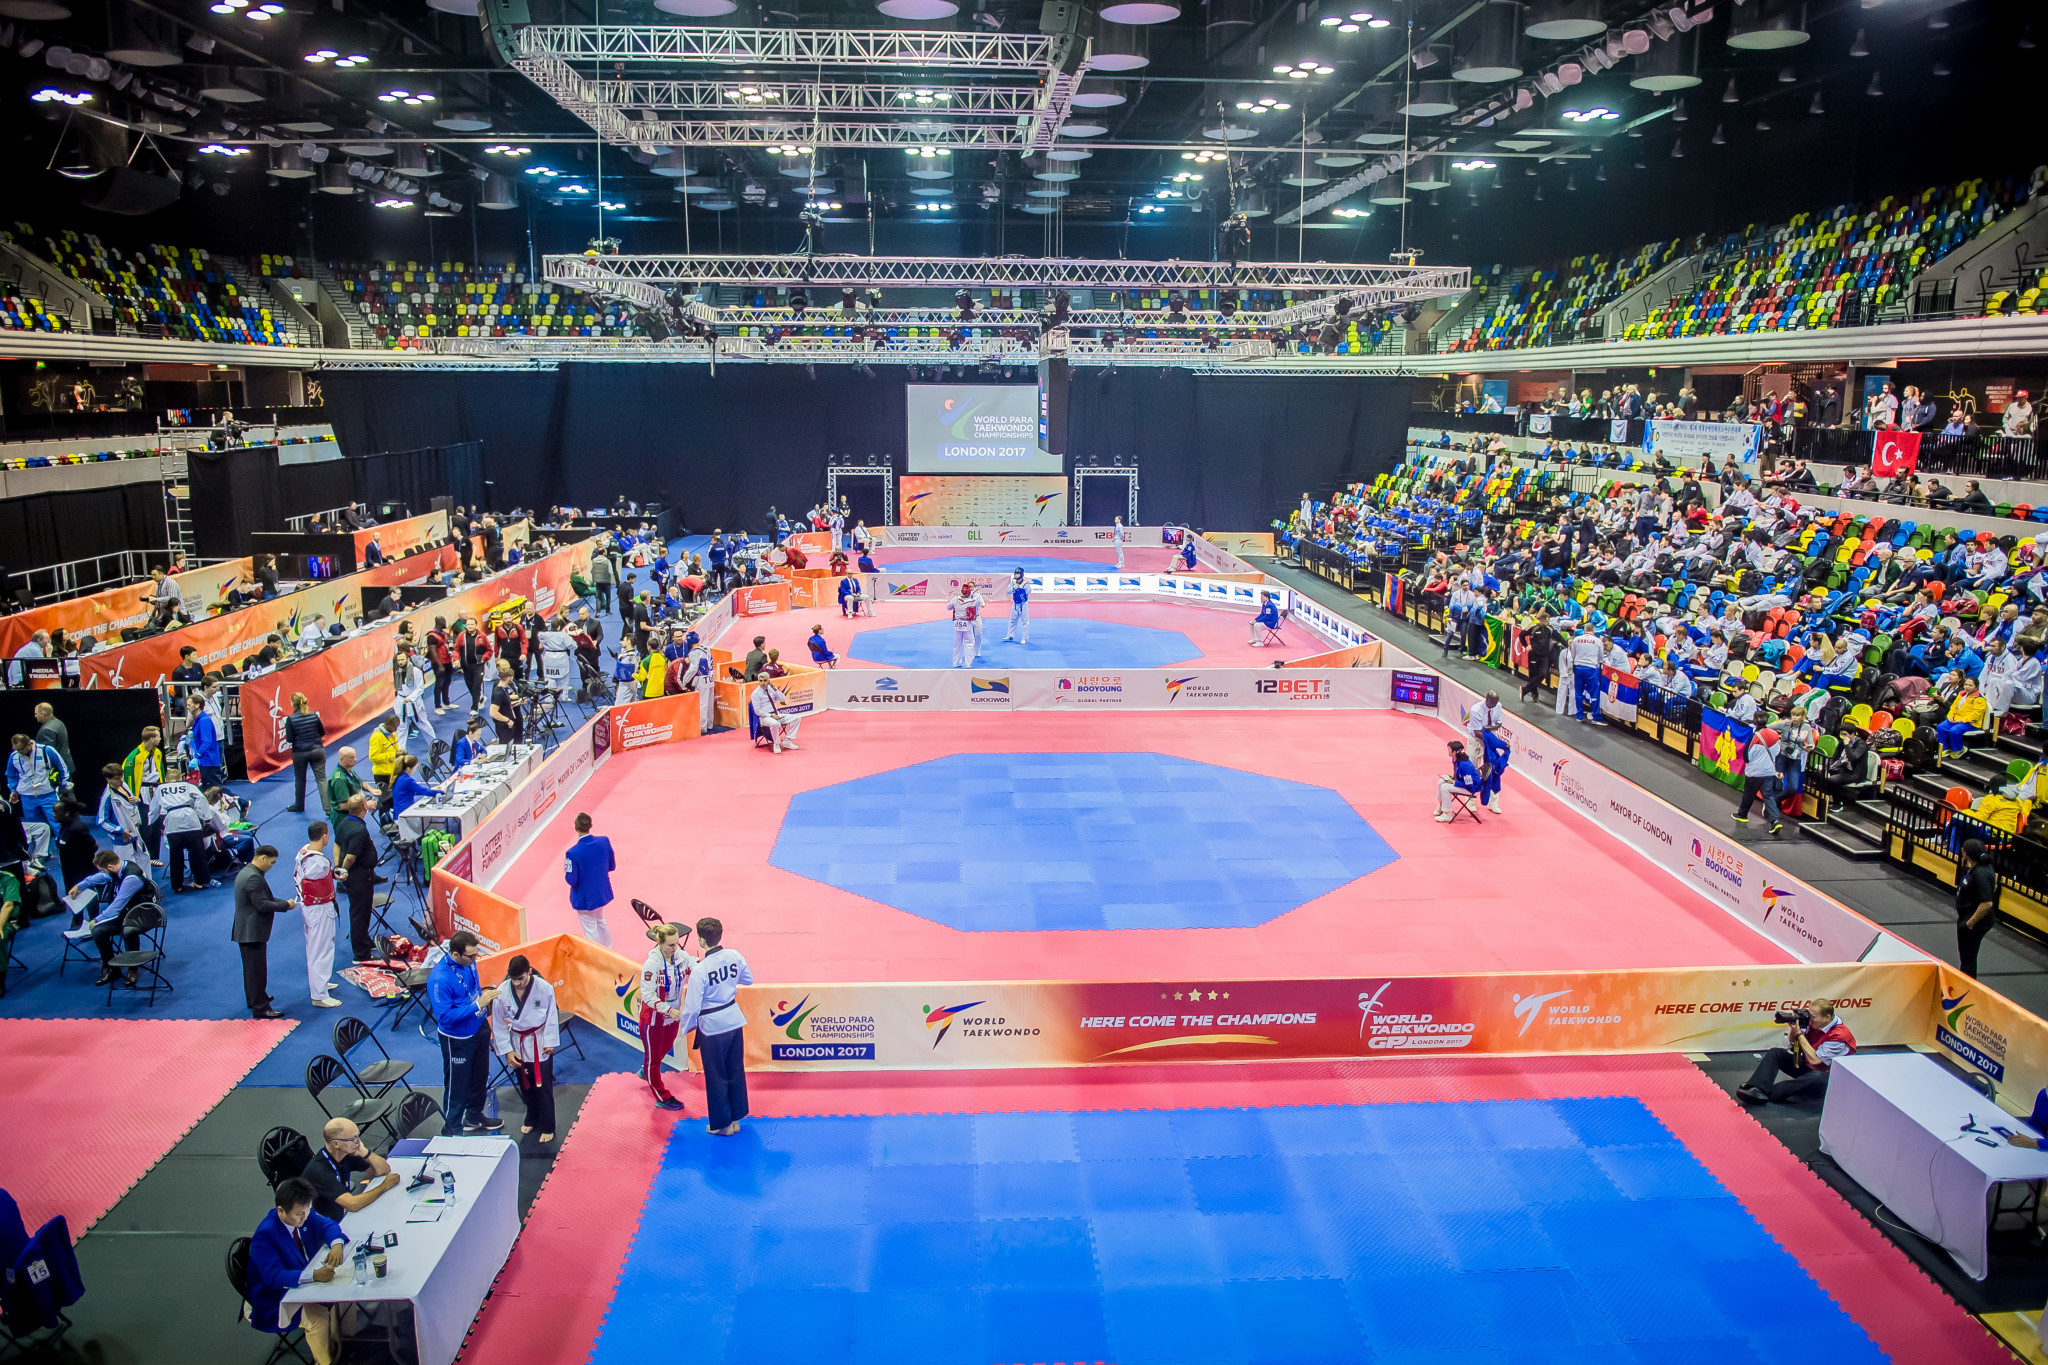 Action at the Copper Box Arena is due to continue tomorrow with the opening day of the World Taekwondo Grand Prix series event ©World Taekwondo